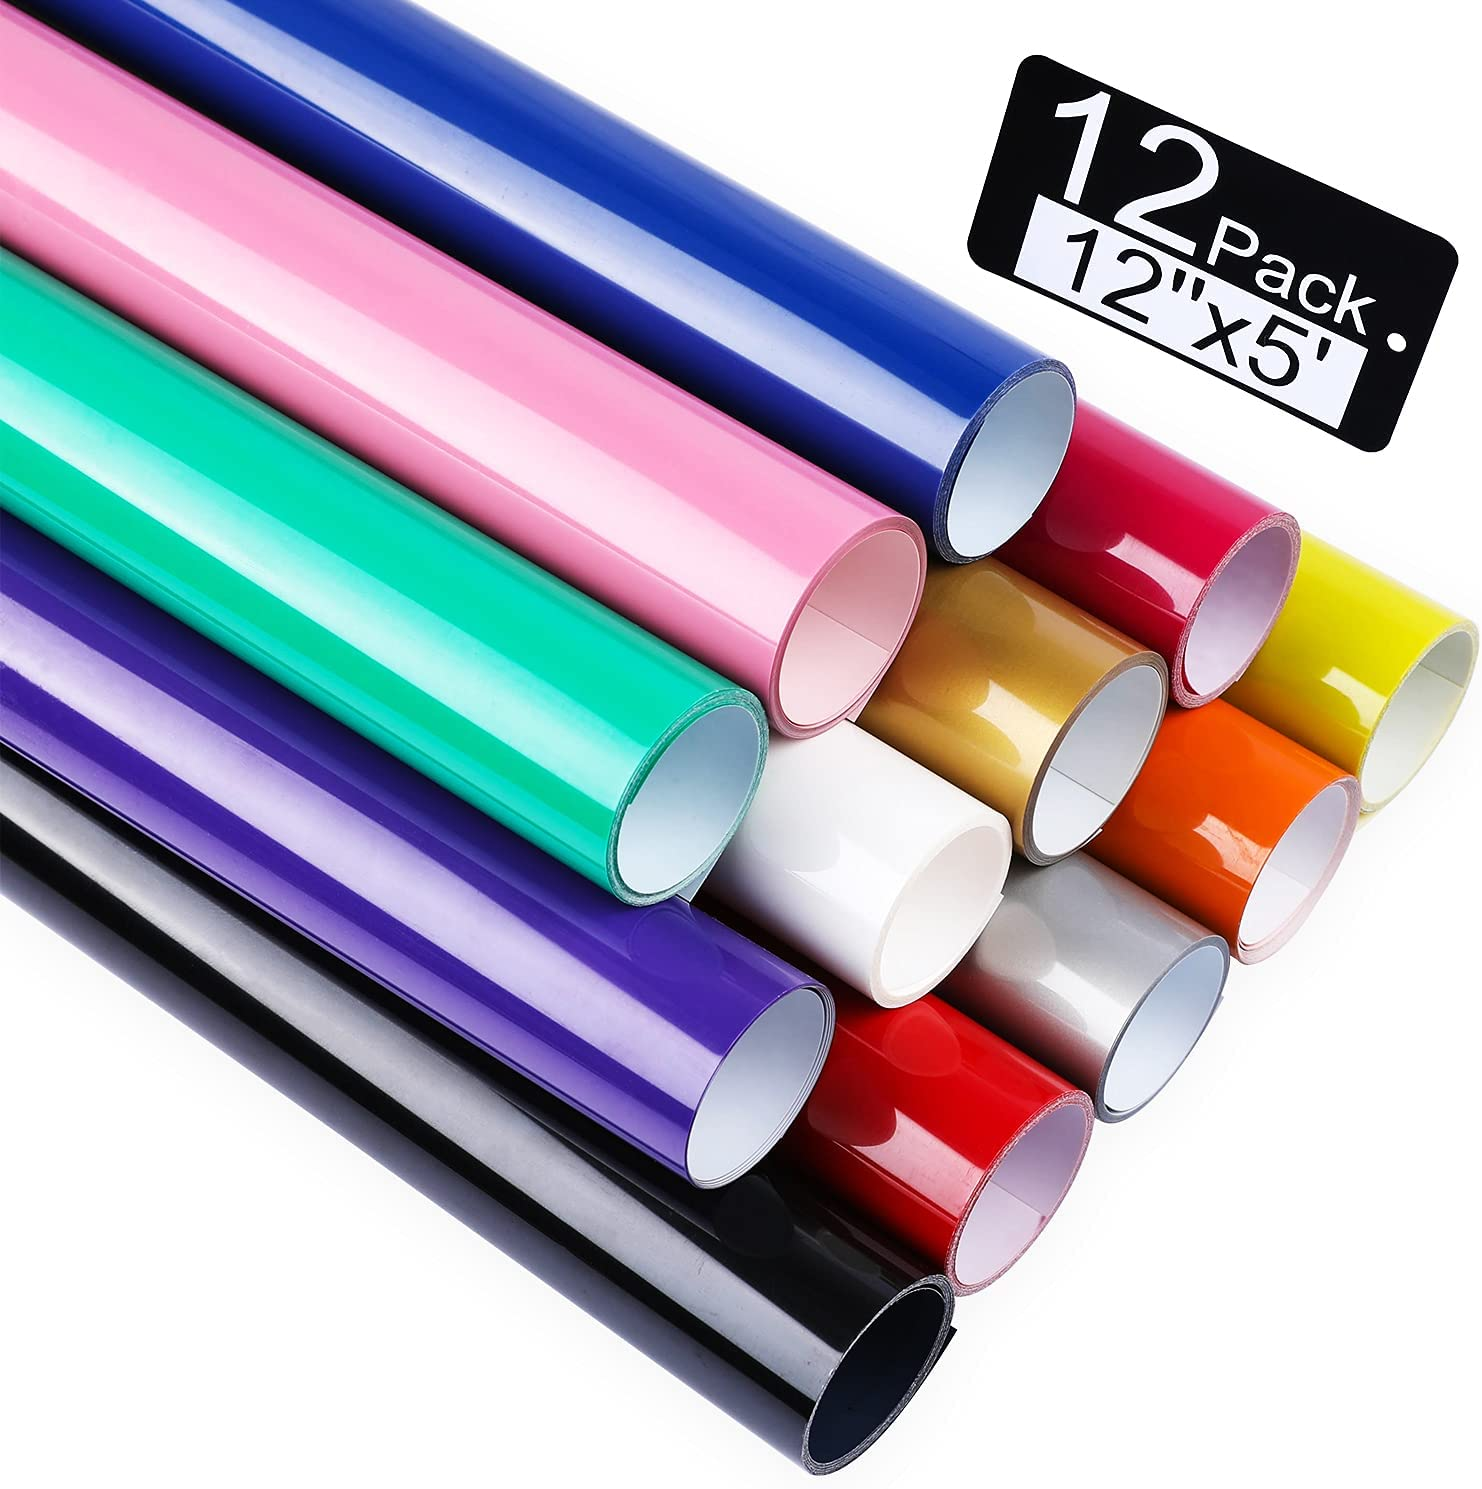 Heat Transfer Vinyl HTV for T-Shirts Direct sale of manufacturer 12 by Rolls Feet 5 Elegant Inches